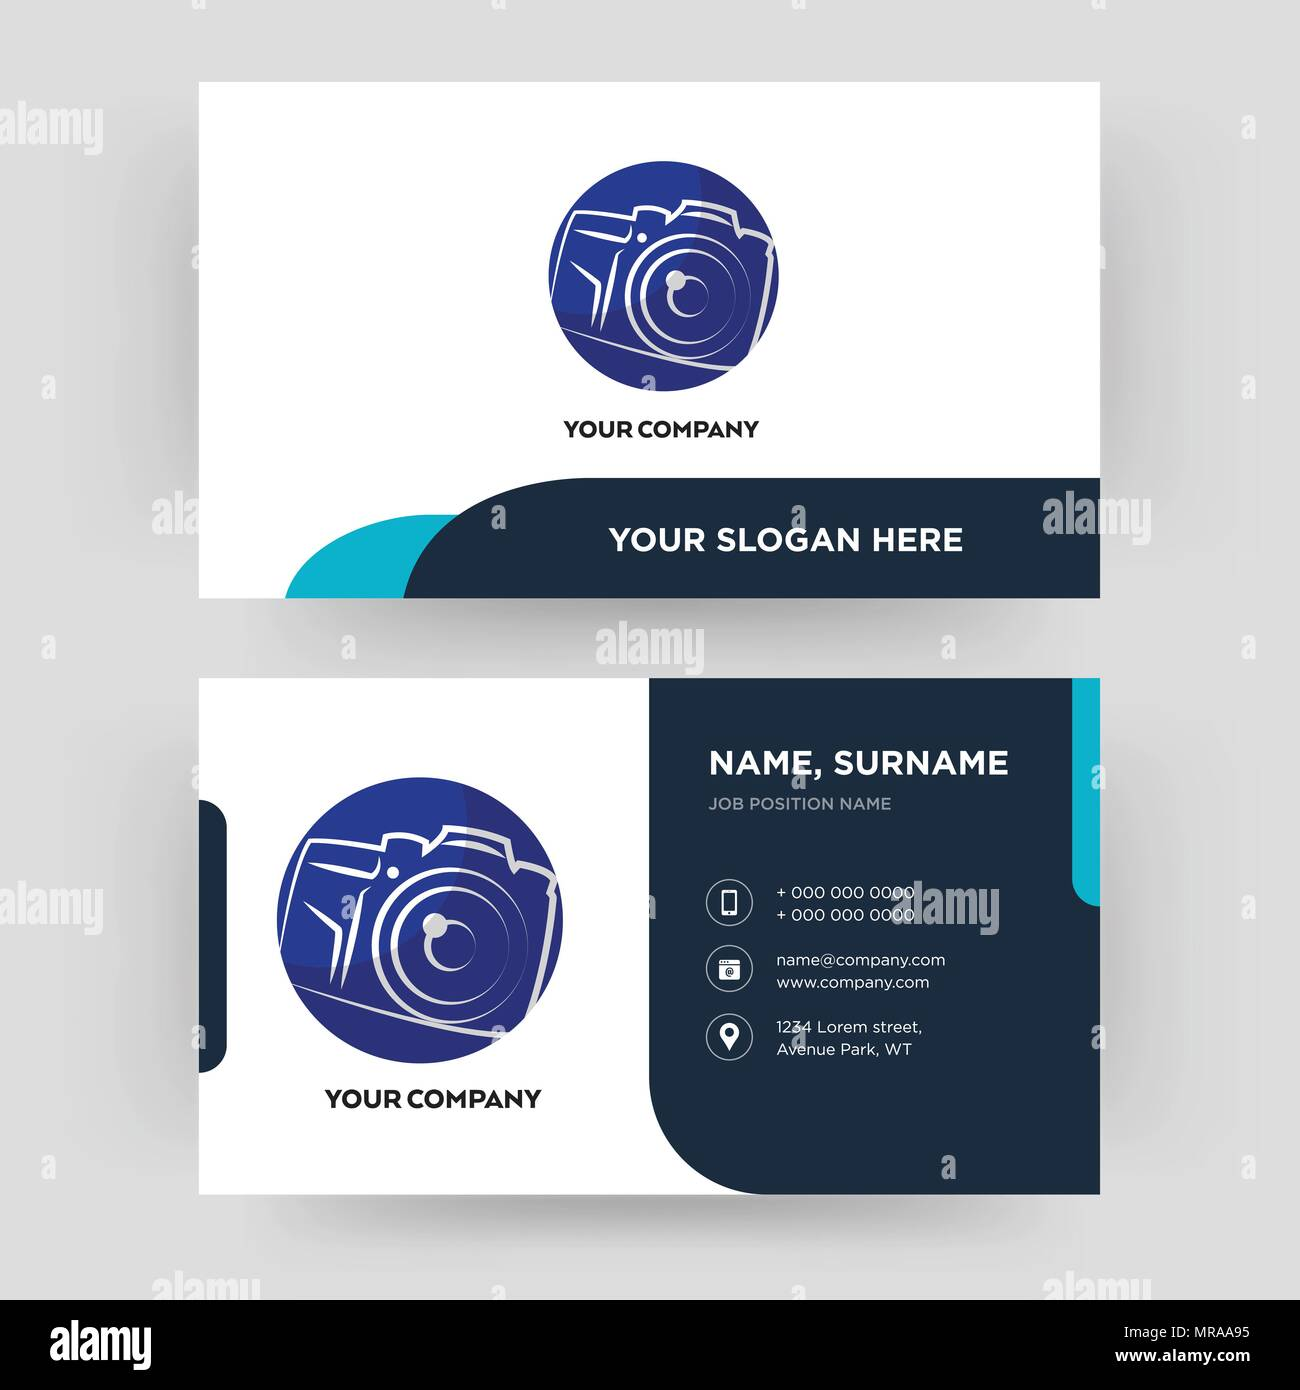 Photography Camera Business Card Design Template Visiting For Your